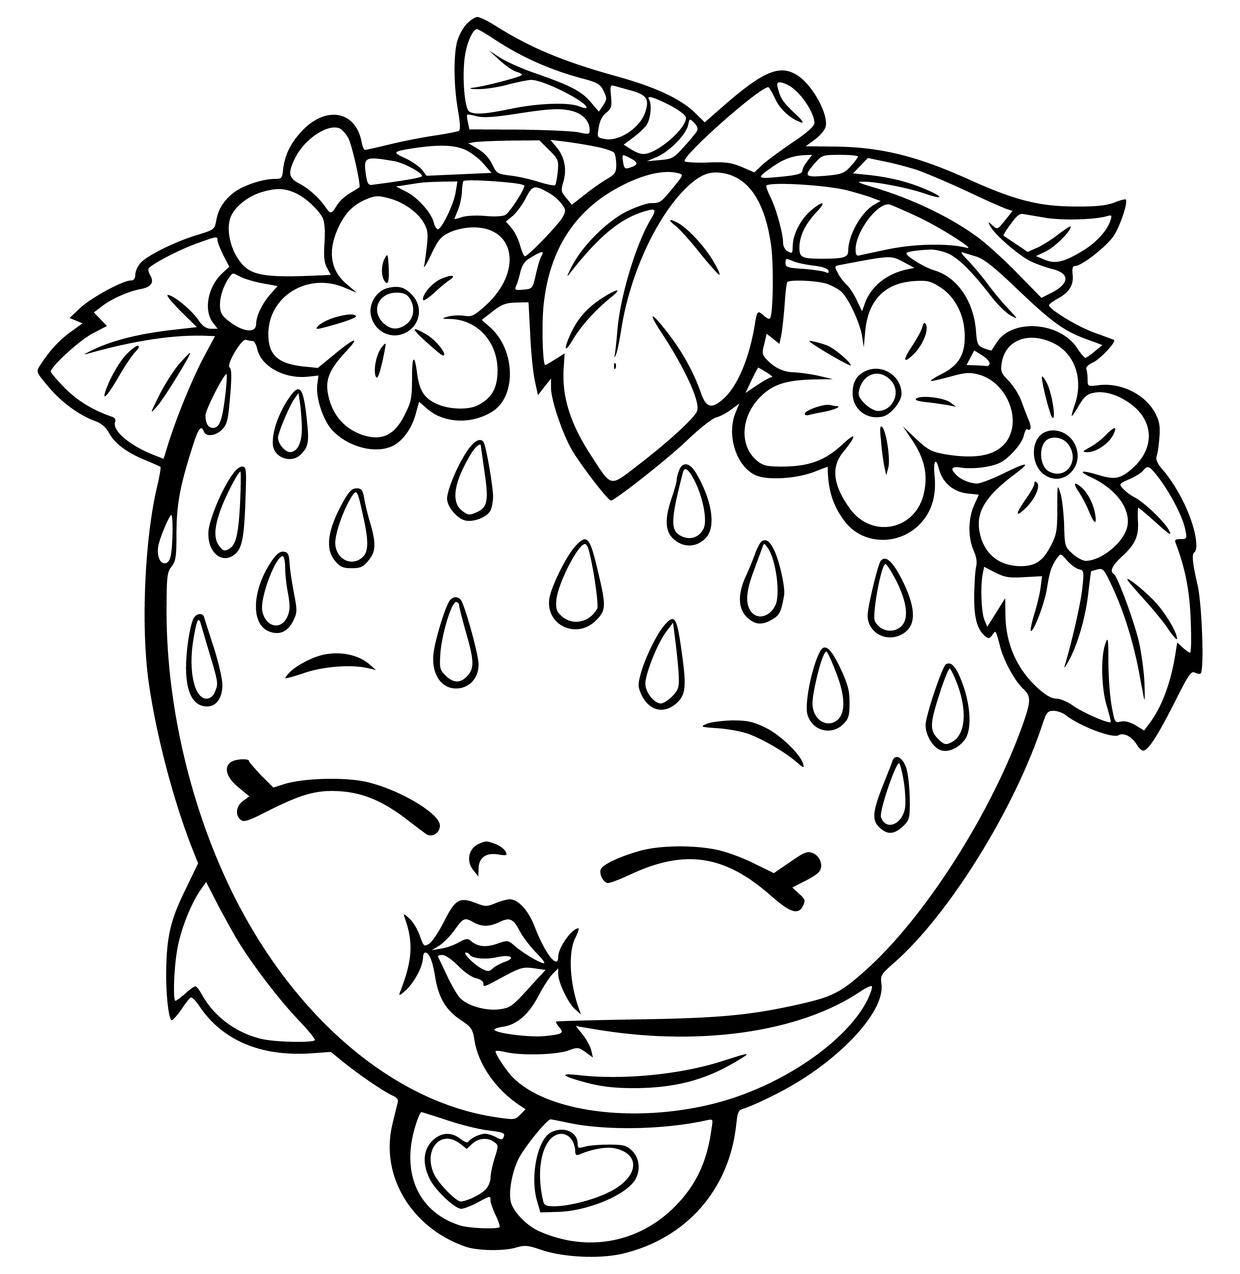 Strawberry Shoppies Coloring Pages Png 1240 1274 Shopkin Coloring Pages Shopkins Colouring Pages Coloring Pages For Girls